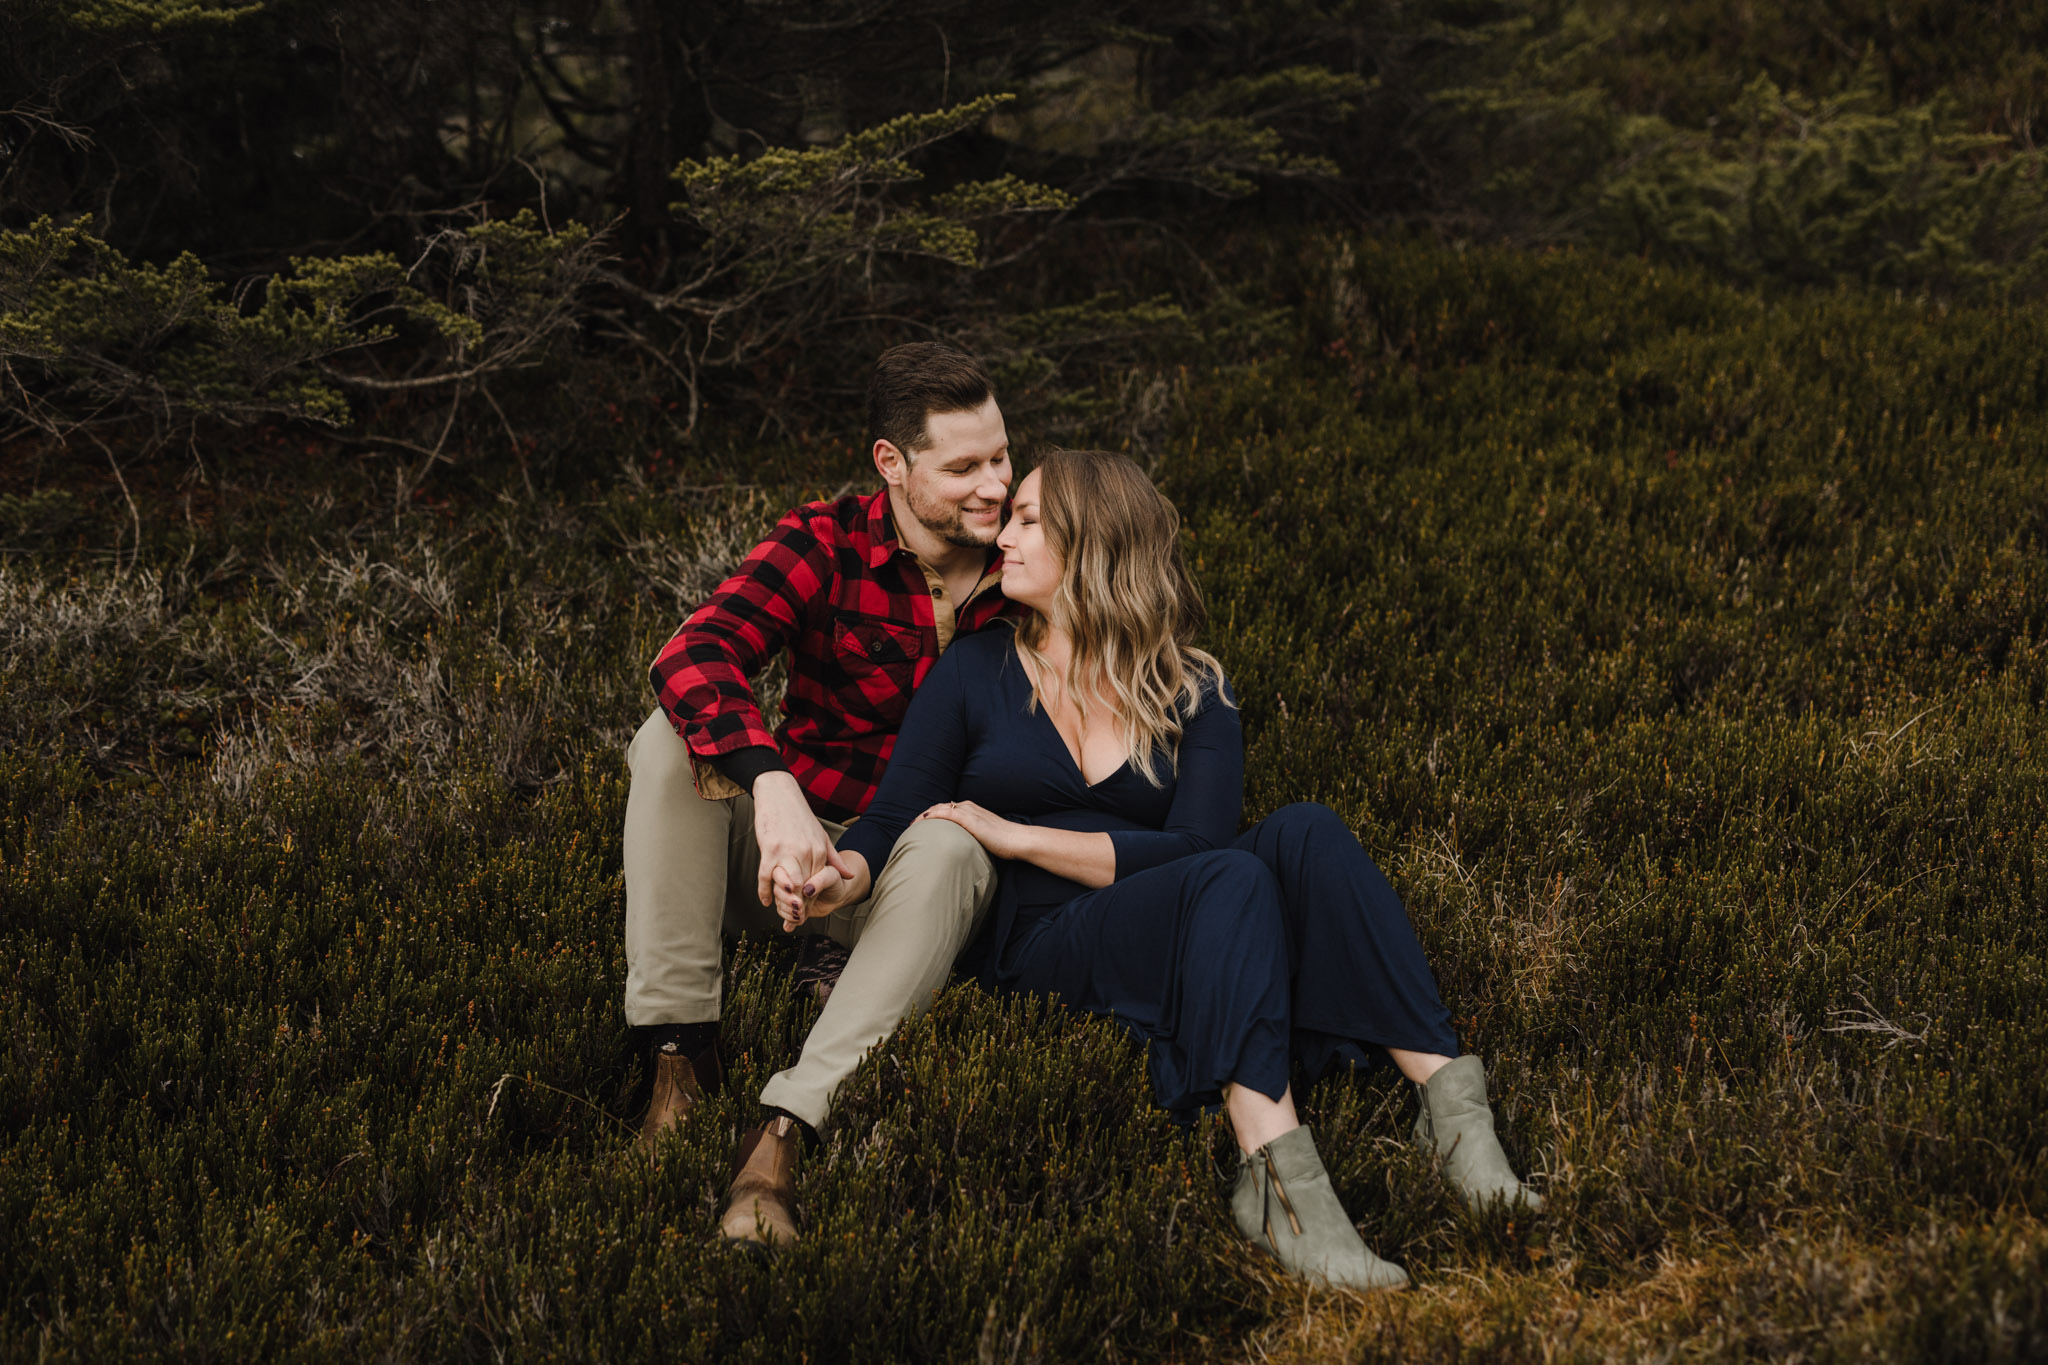 BC Mountain Top Engagement Photographer - outdoor adventure engagement